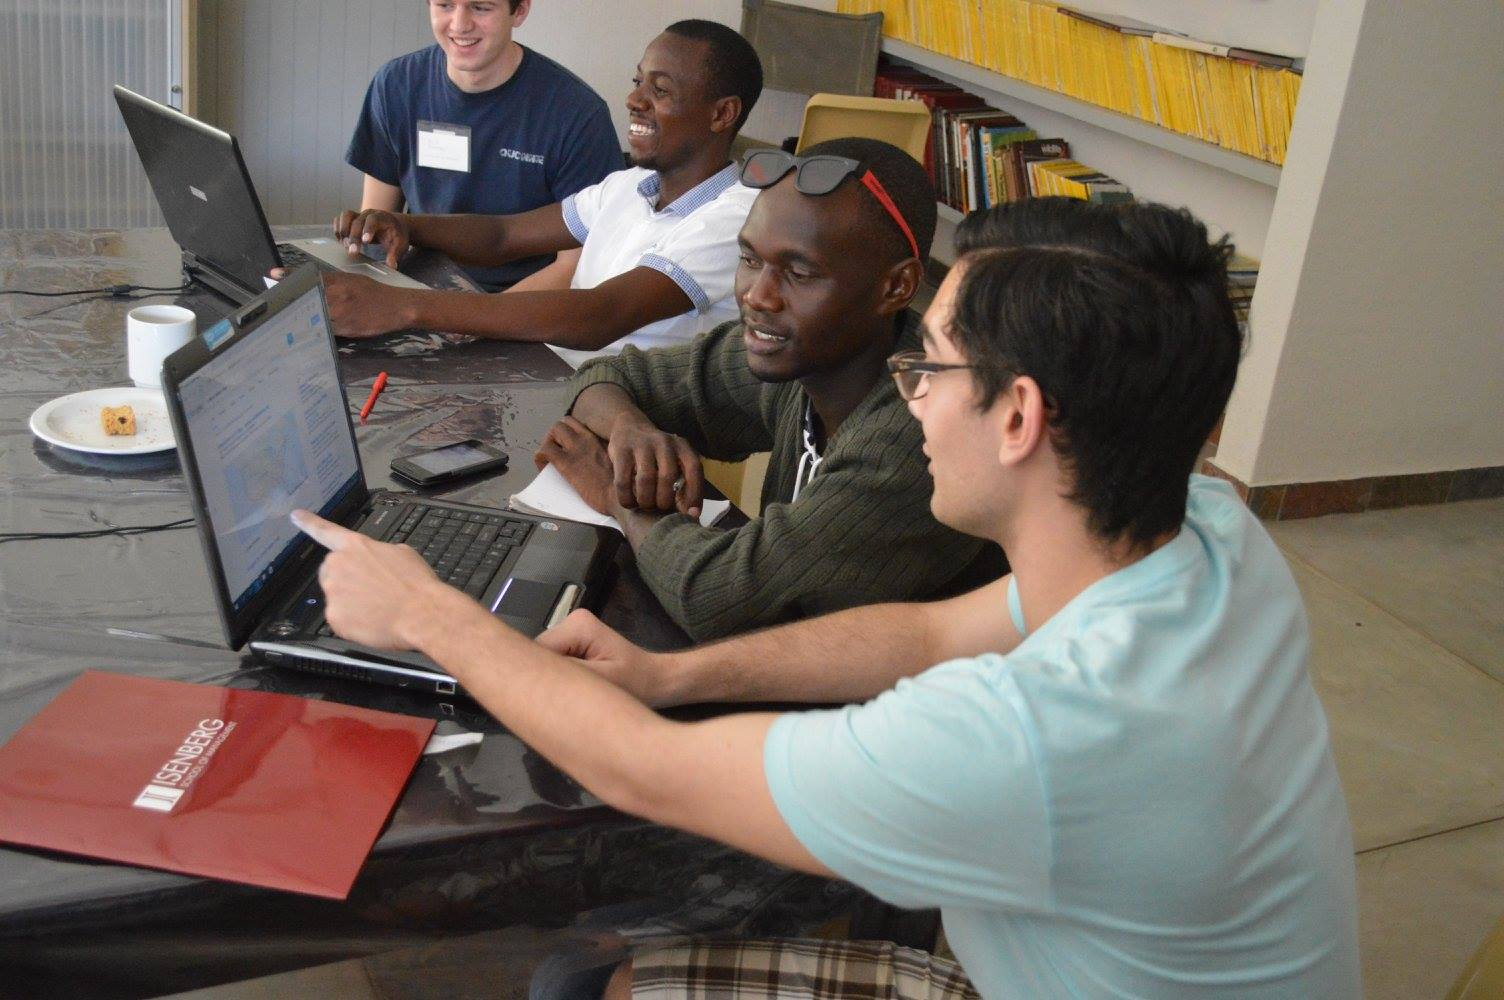 An Isenberg student instructs a South African student on the computer